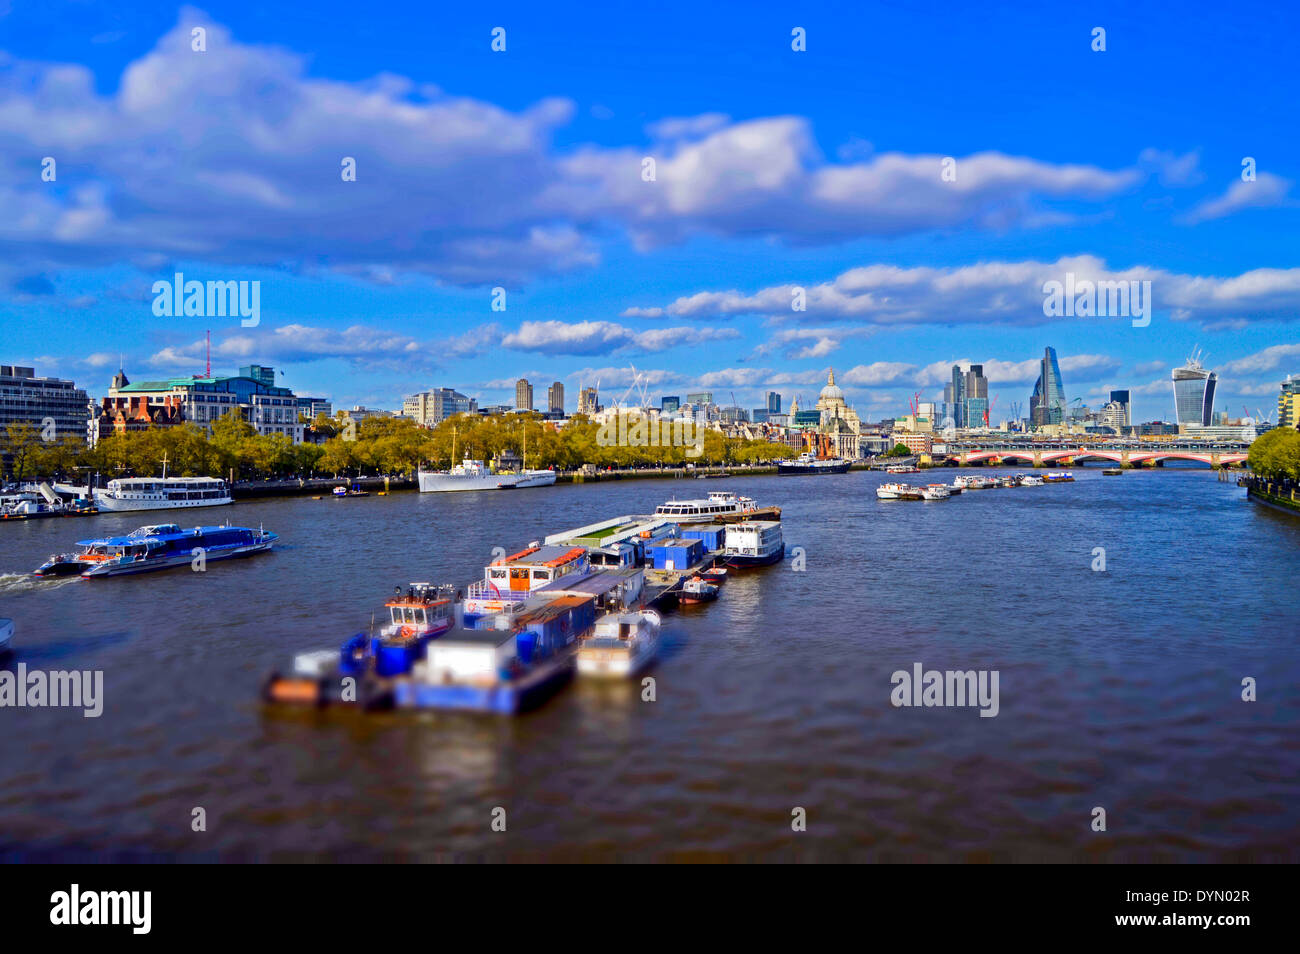 The City of London skyline showing the River Thames, as seen from Waterloo Bridge, London, England, United Kingdom Stock Photo